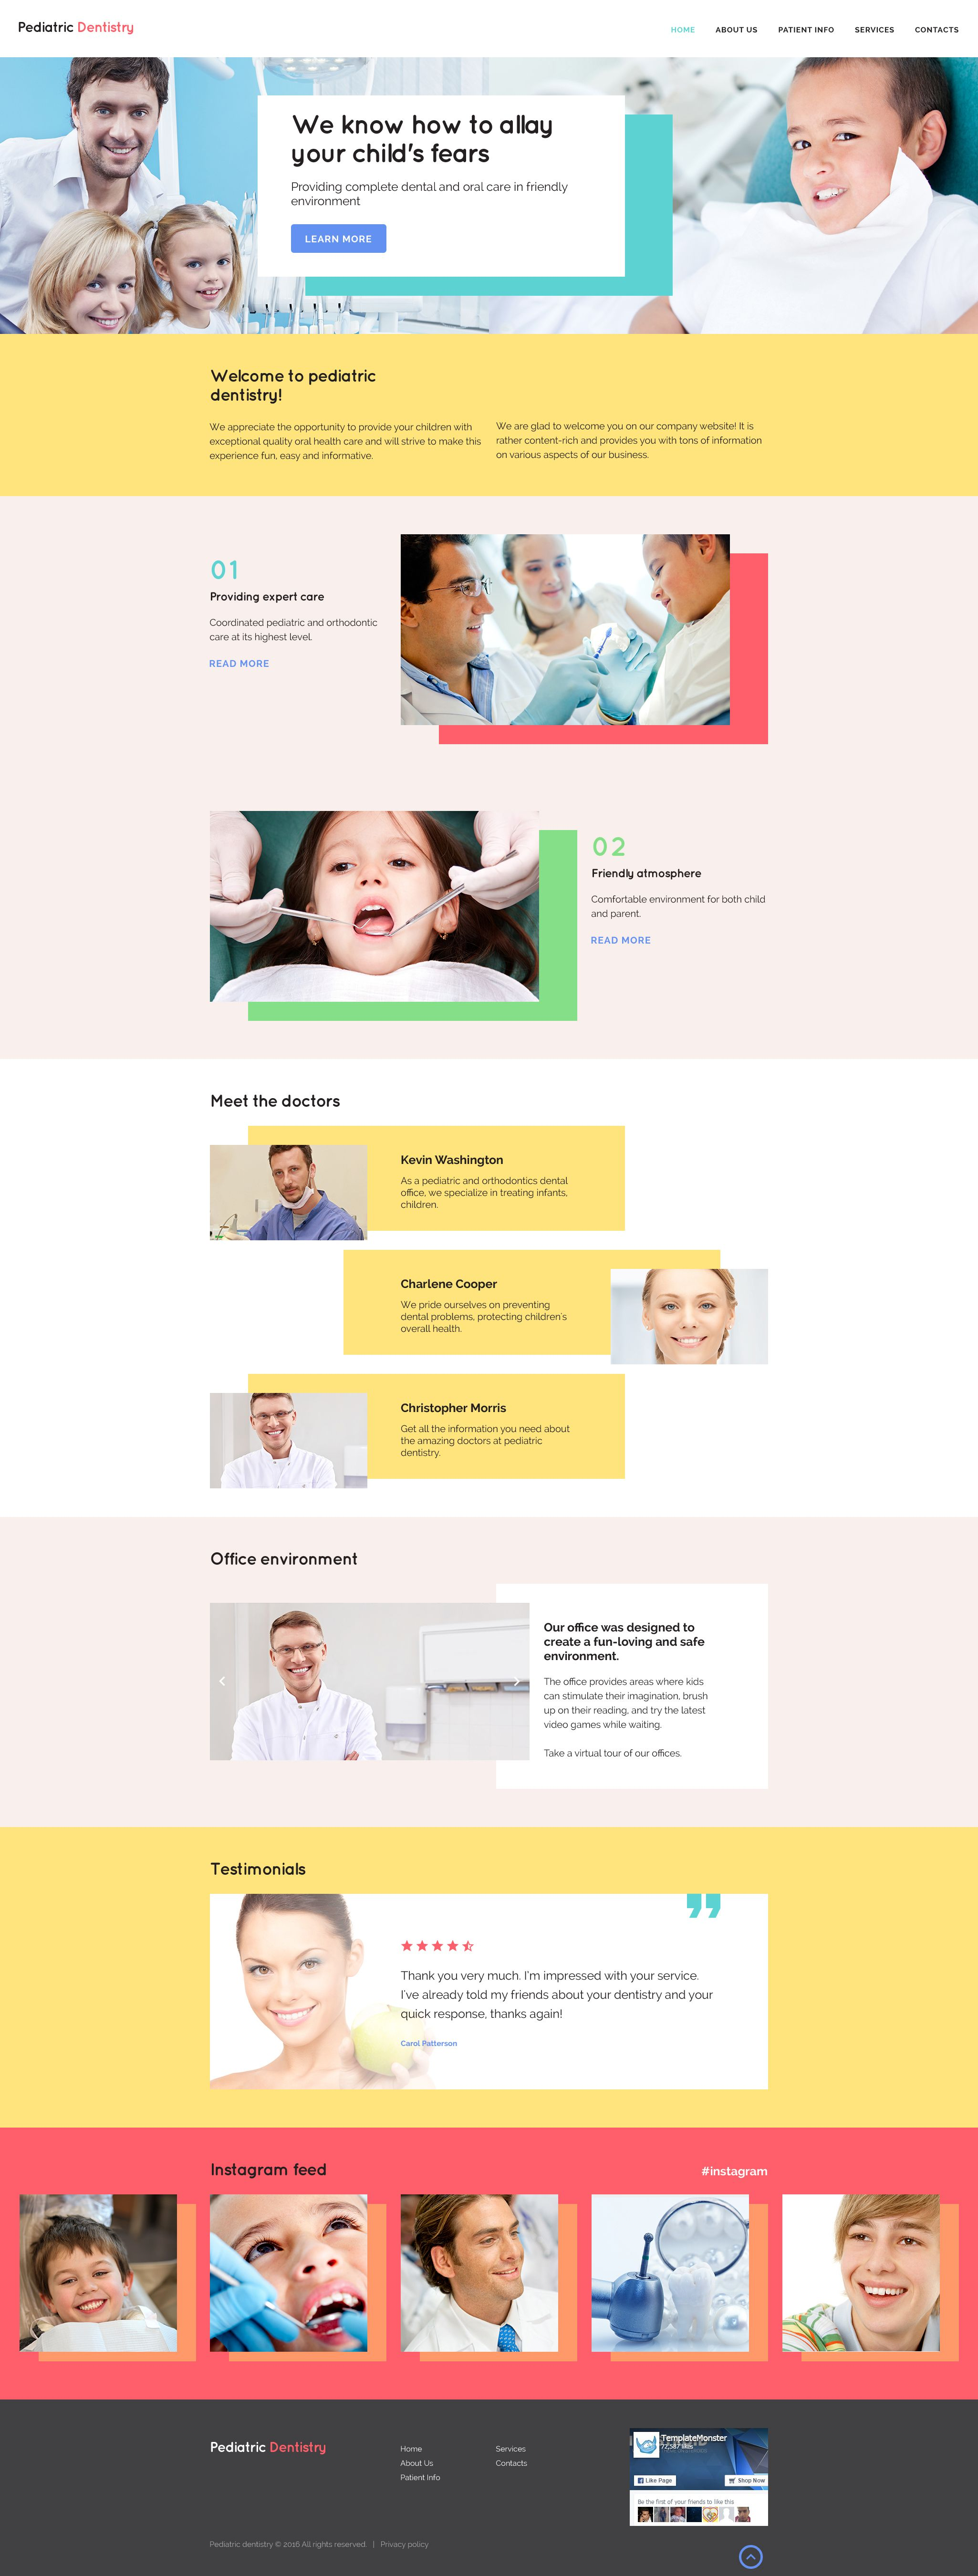 Dentistry Site Template In 2020 Template Site Website Template Pediatric Dentistry